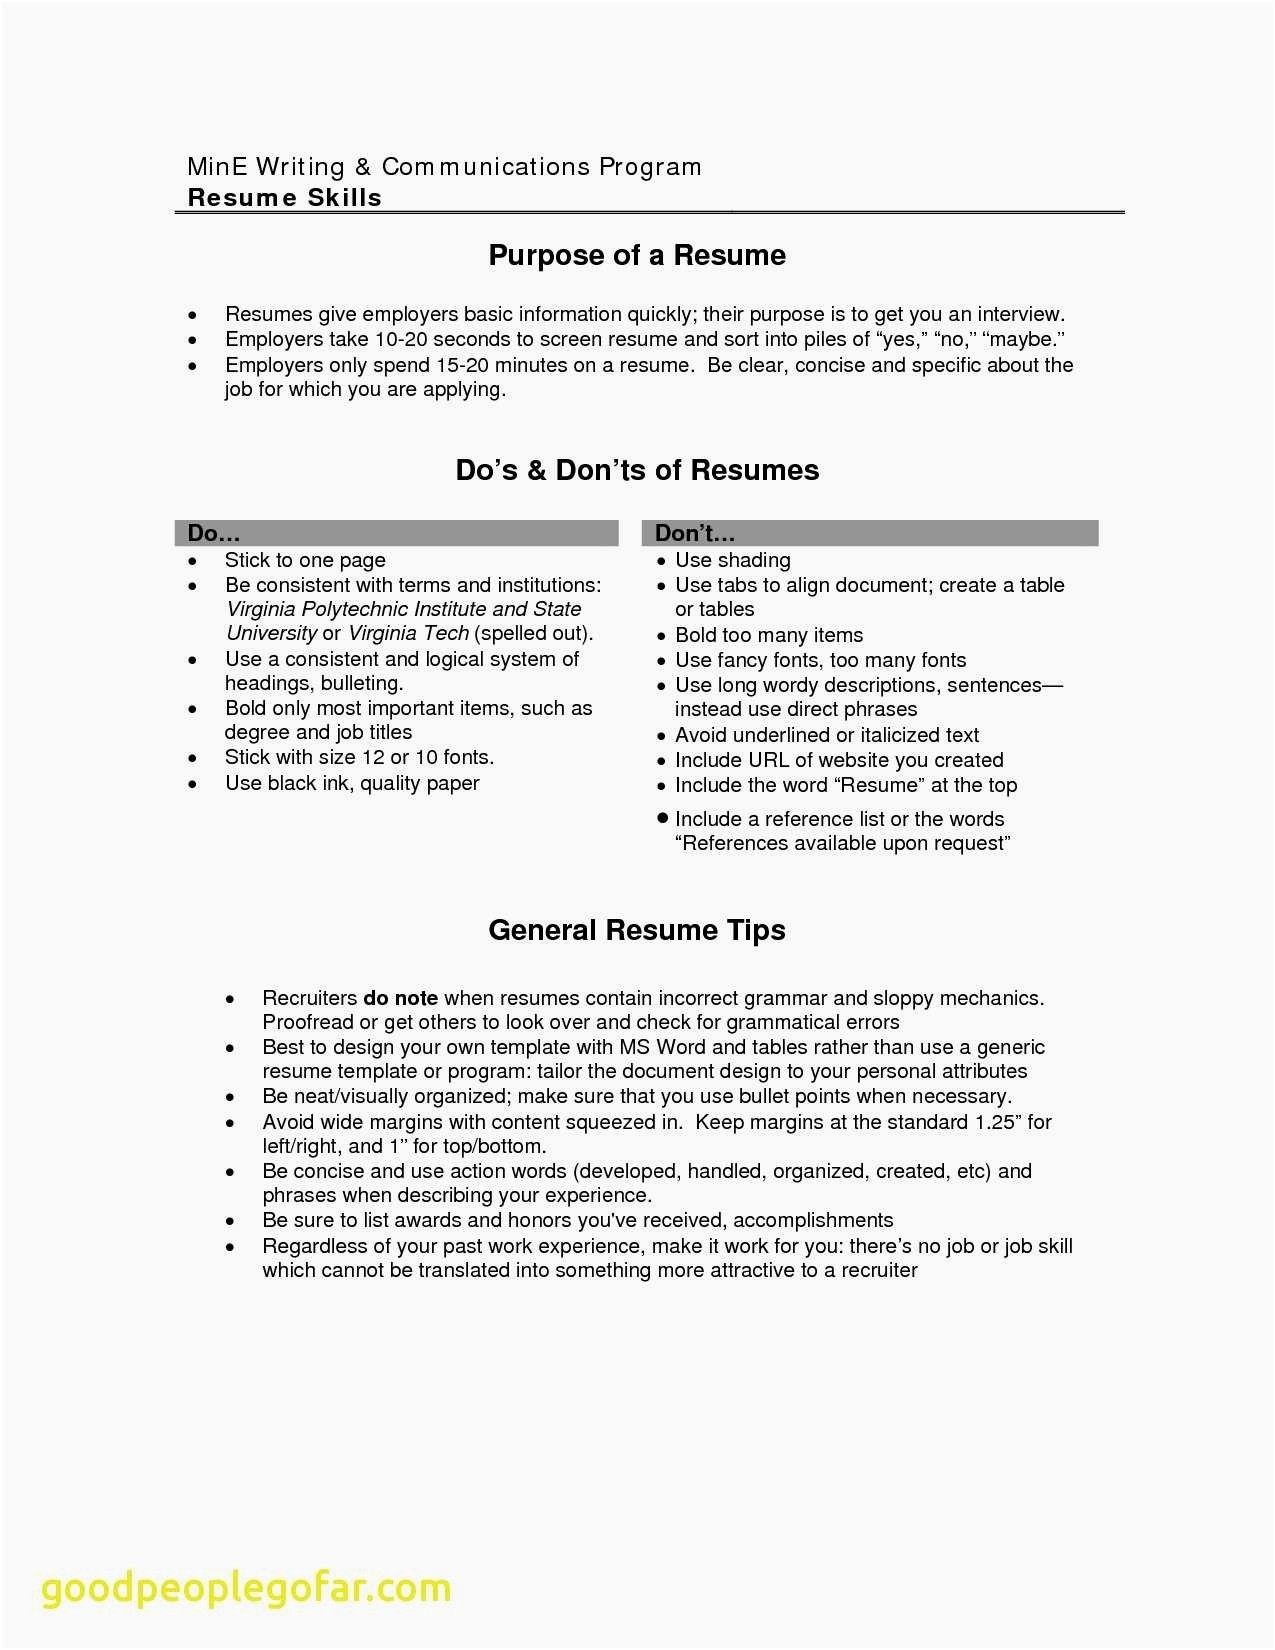 What Do I Need for A Resume - Good Things to Put A Resume Elegant Elegant Entry Level Resume